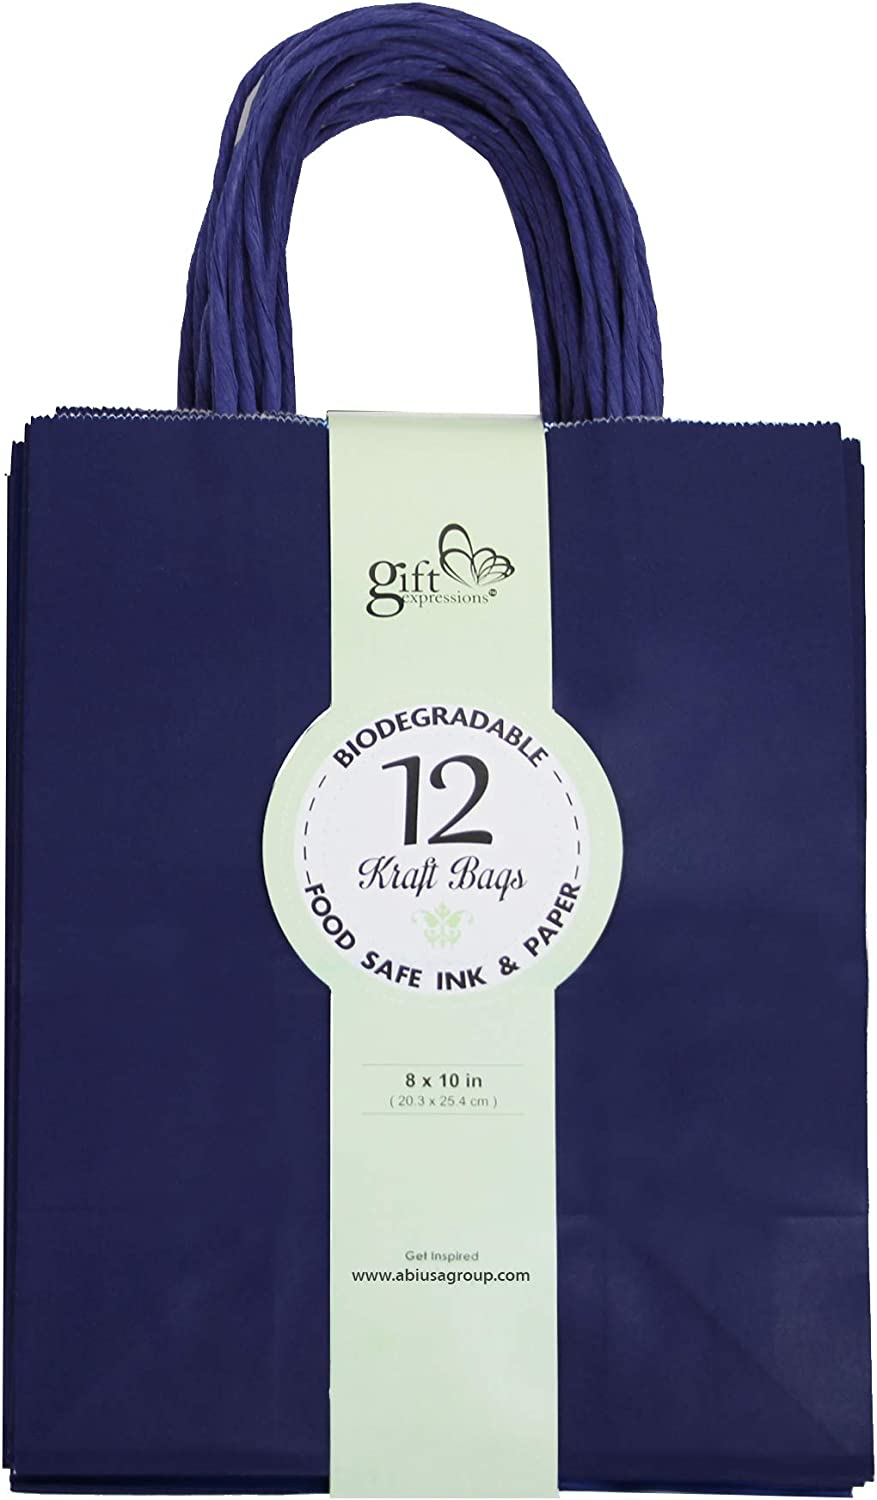 12CT Medium Navy Biodegradable, Food Safe Ink & Paper, Premium Quality Paper (Sturdy & Thicker), Kraft Bag with Colored Sturdy Handle (Medium, Navy)